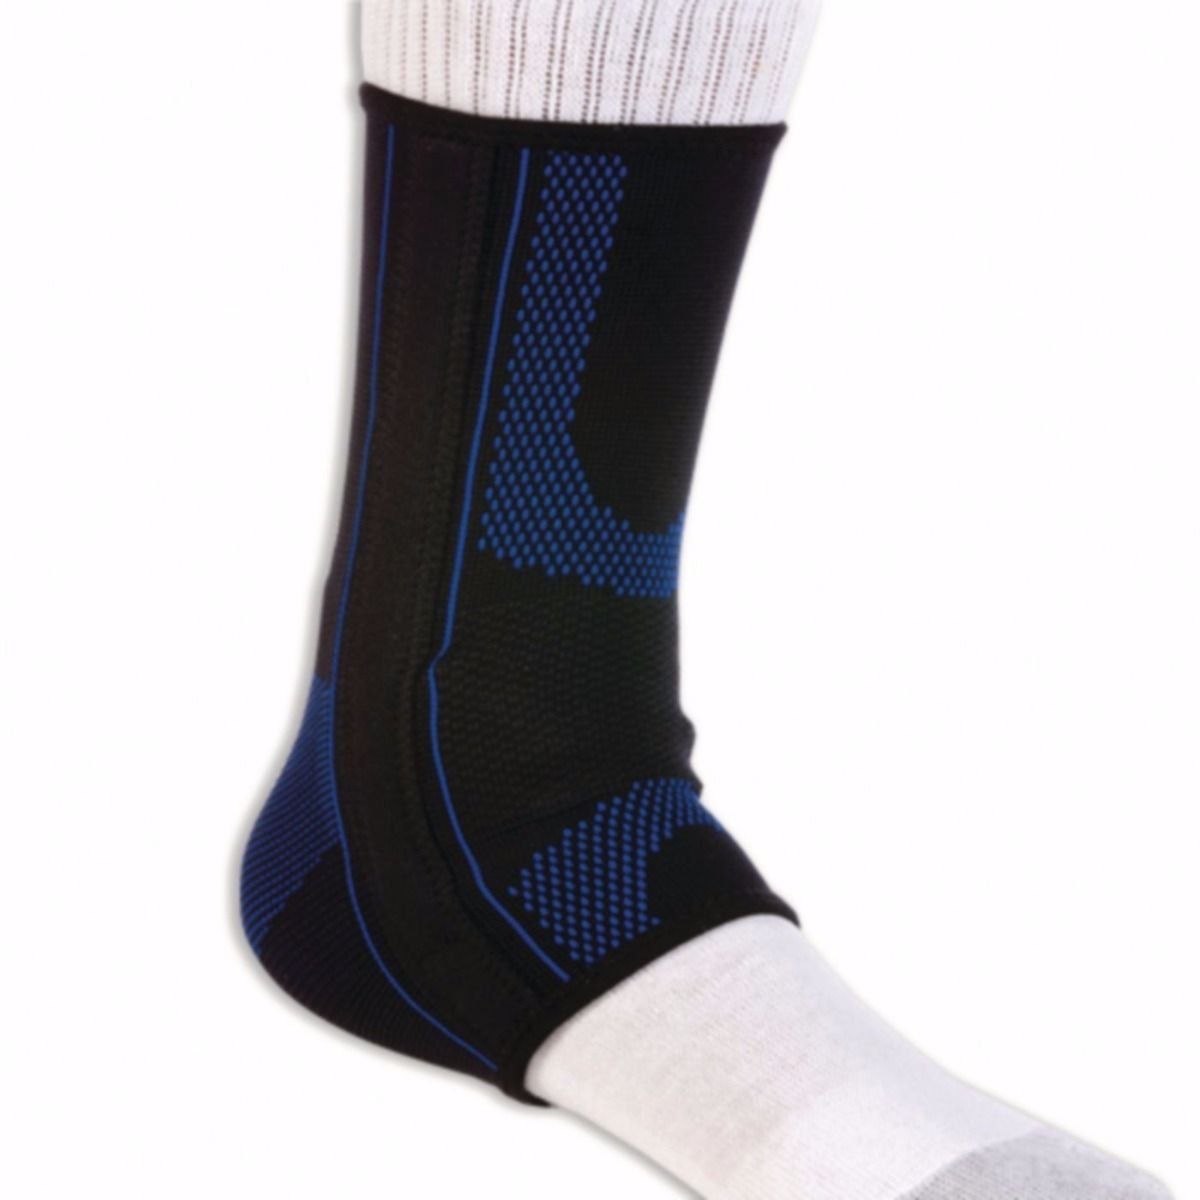 Physical Therapy Aids 081576628 Pro-TEC Gel-Force Ankle Support Large by Physical Therapy Aids